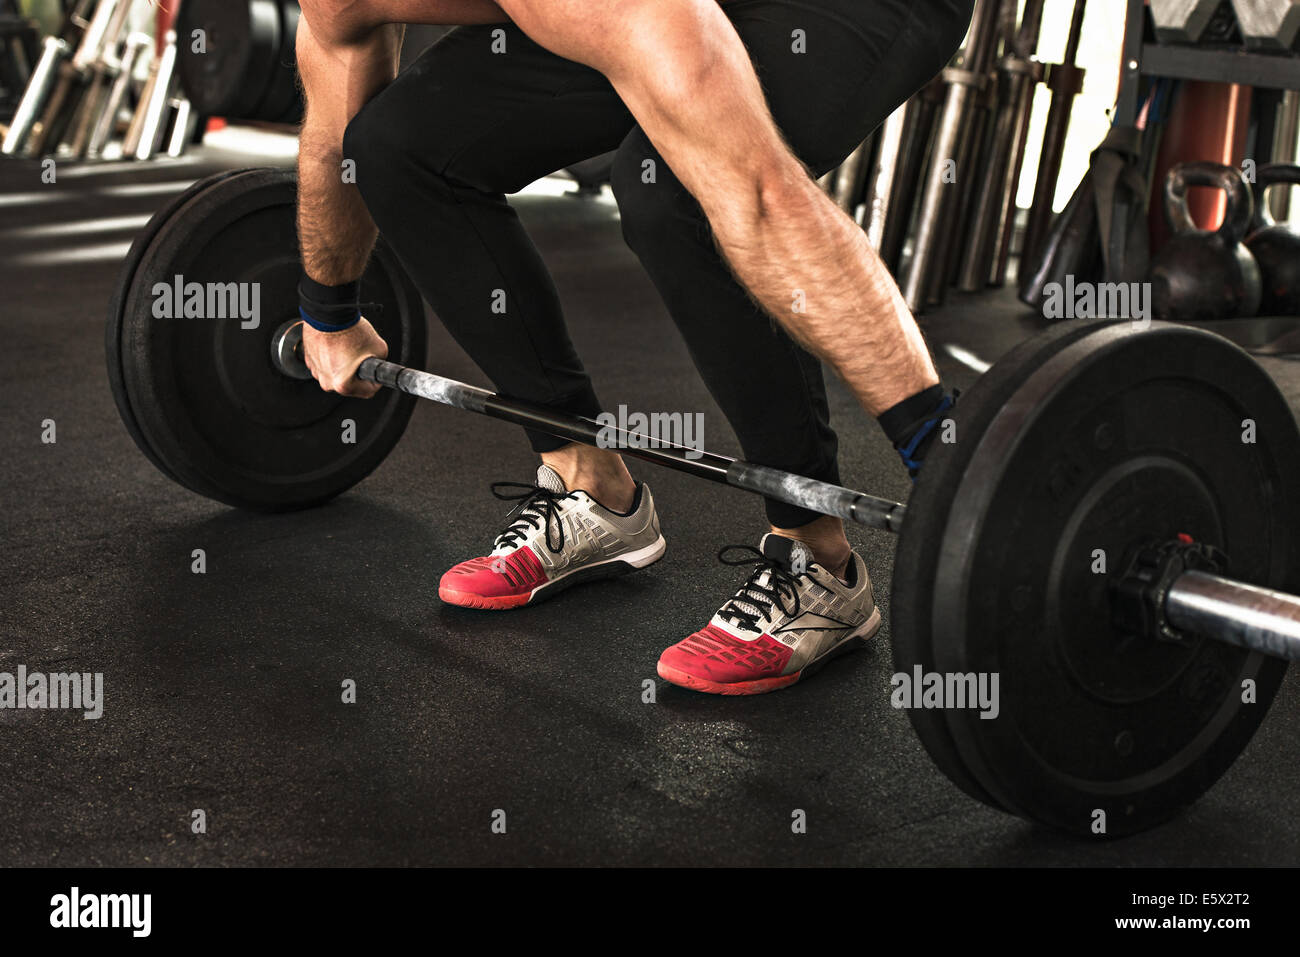 Bodybuilder bending to lift barbell in gym - Stock Image